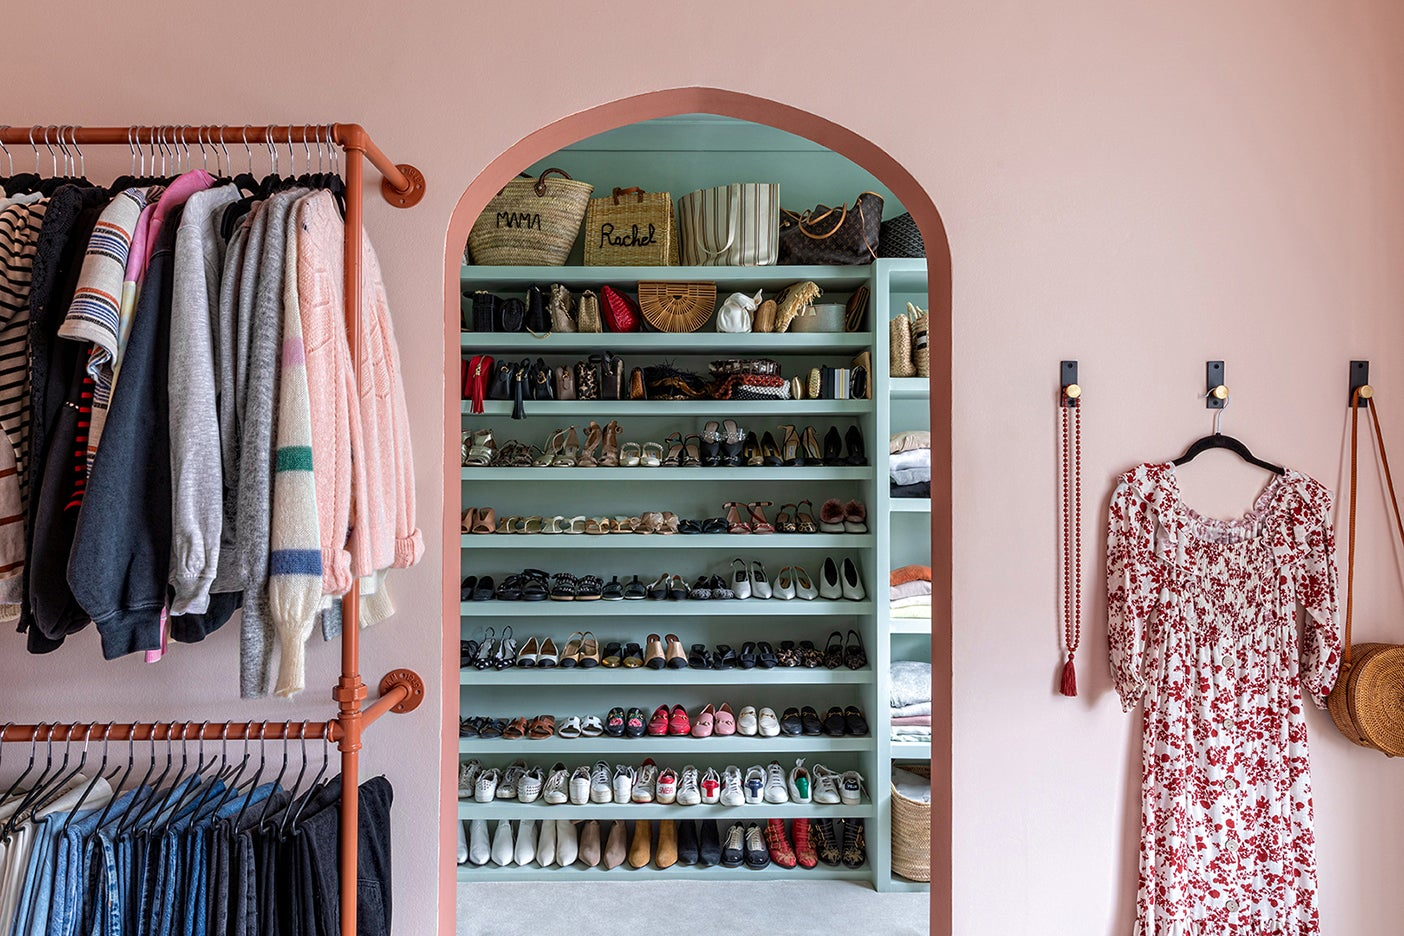 pink arch leading to green walk-in closet